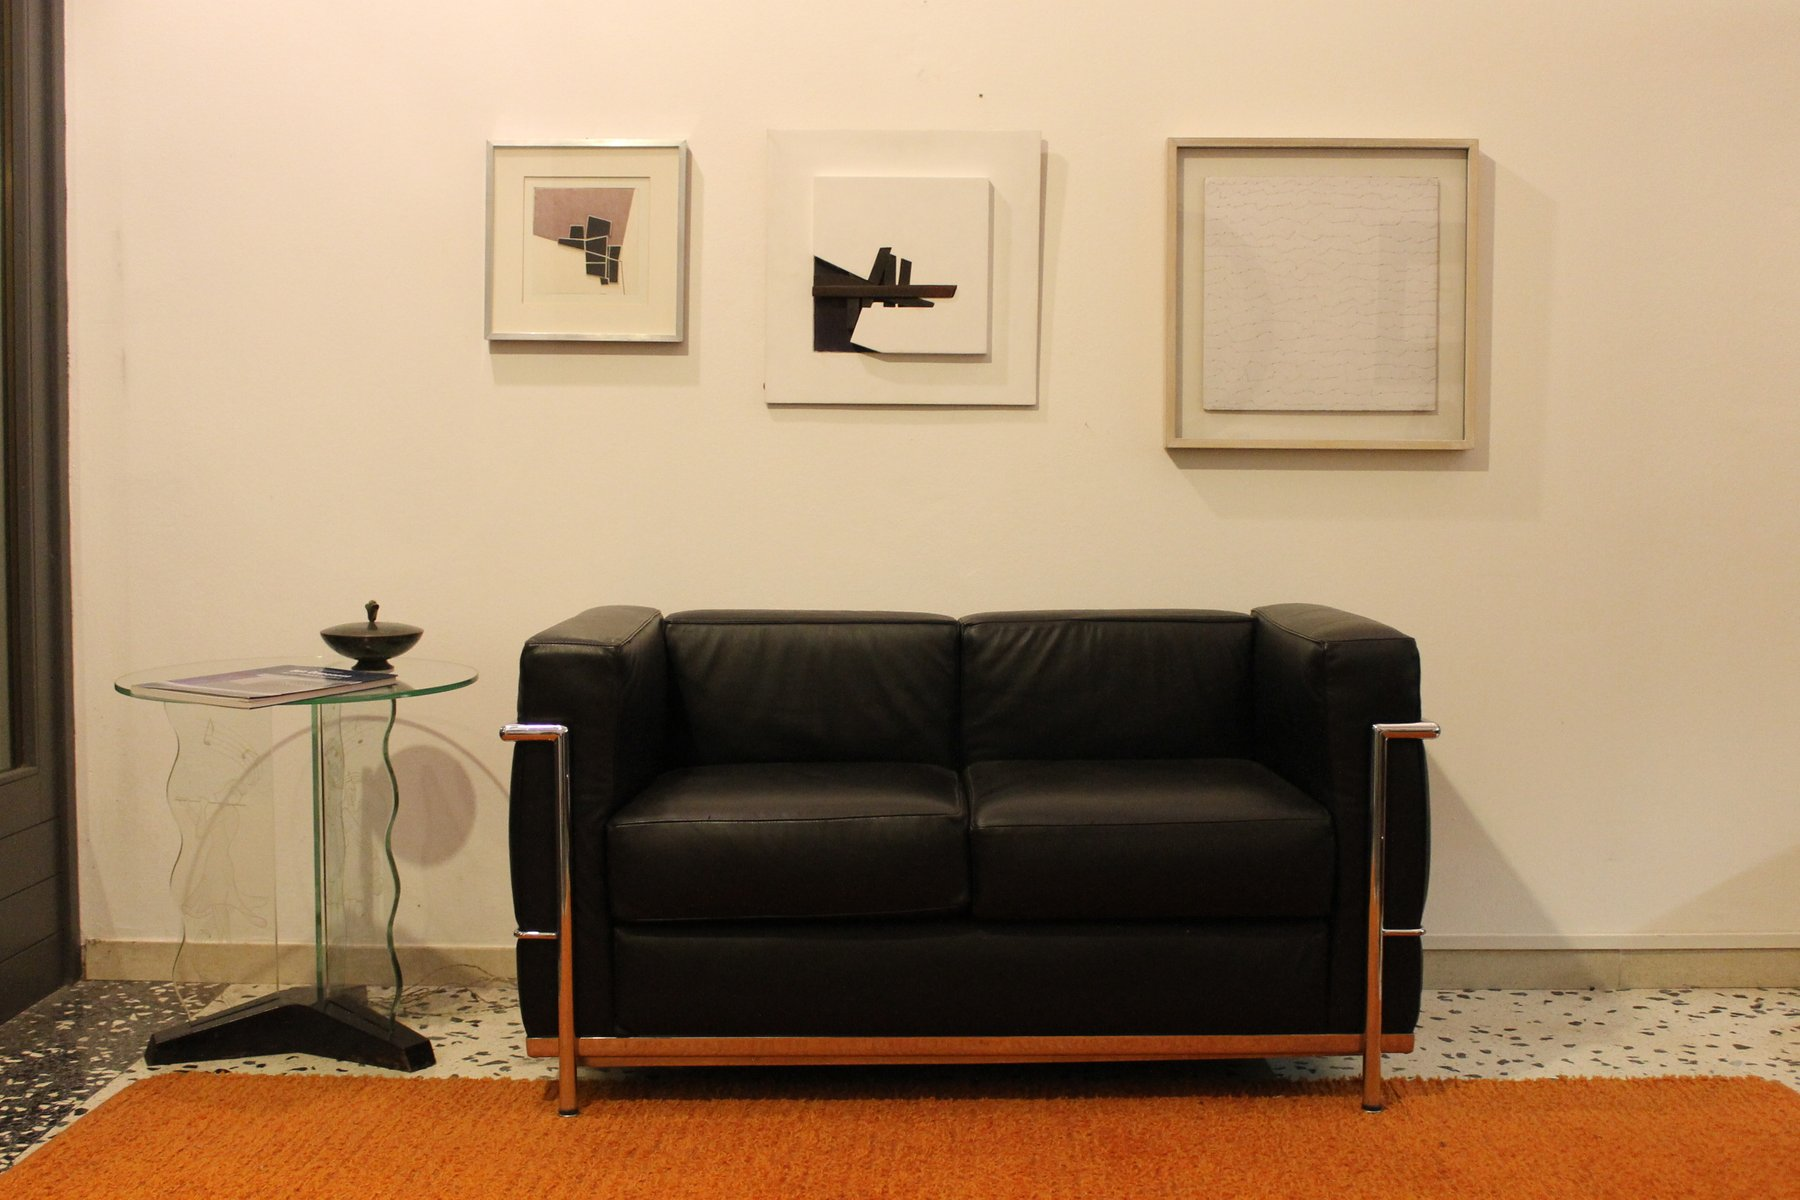 Lc2 sofa by le corbusier for alivar 1989 for sale at pamono - Canape lc2 le corbusier ...